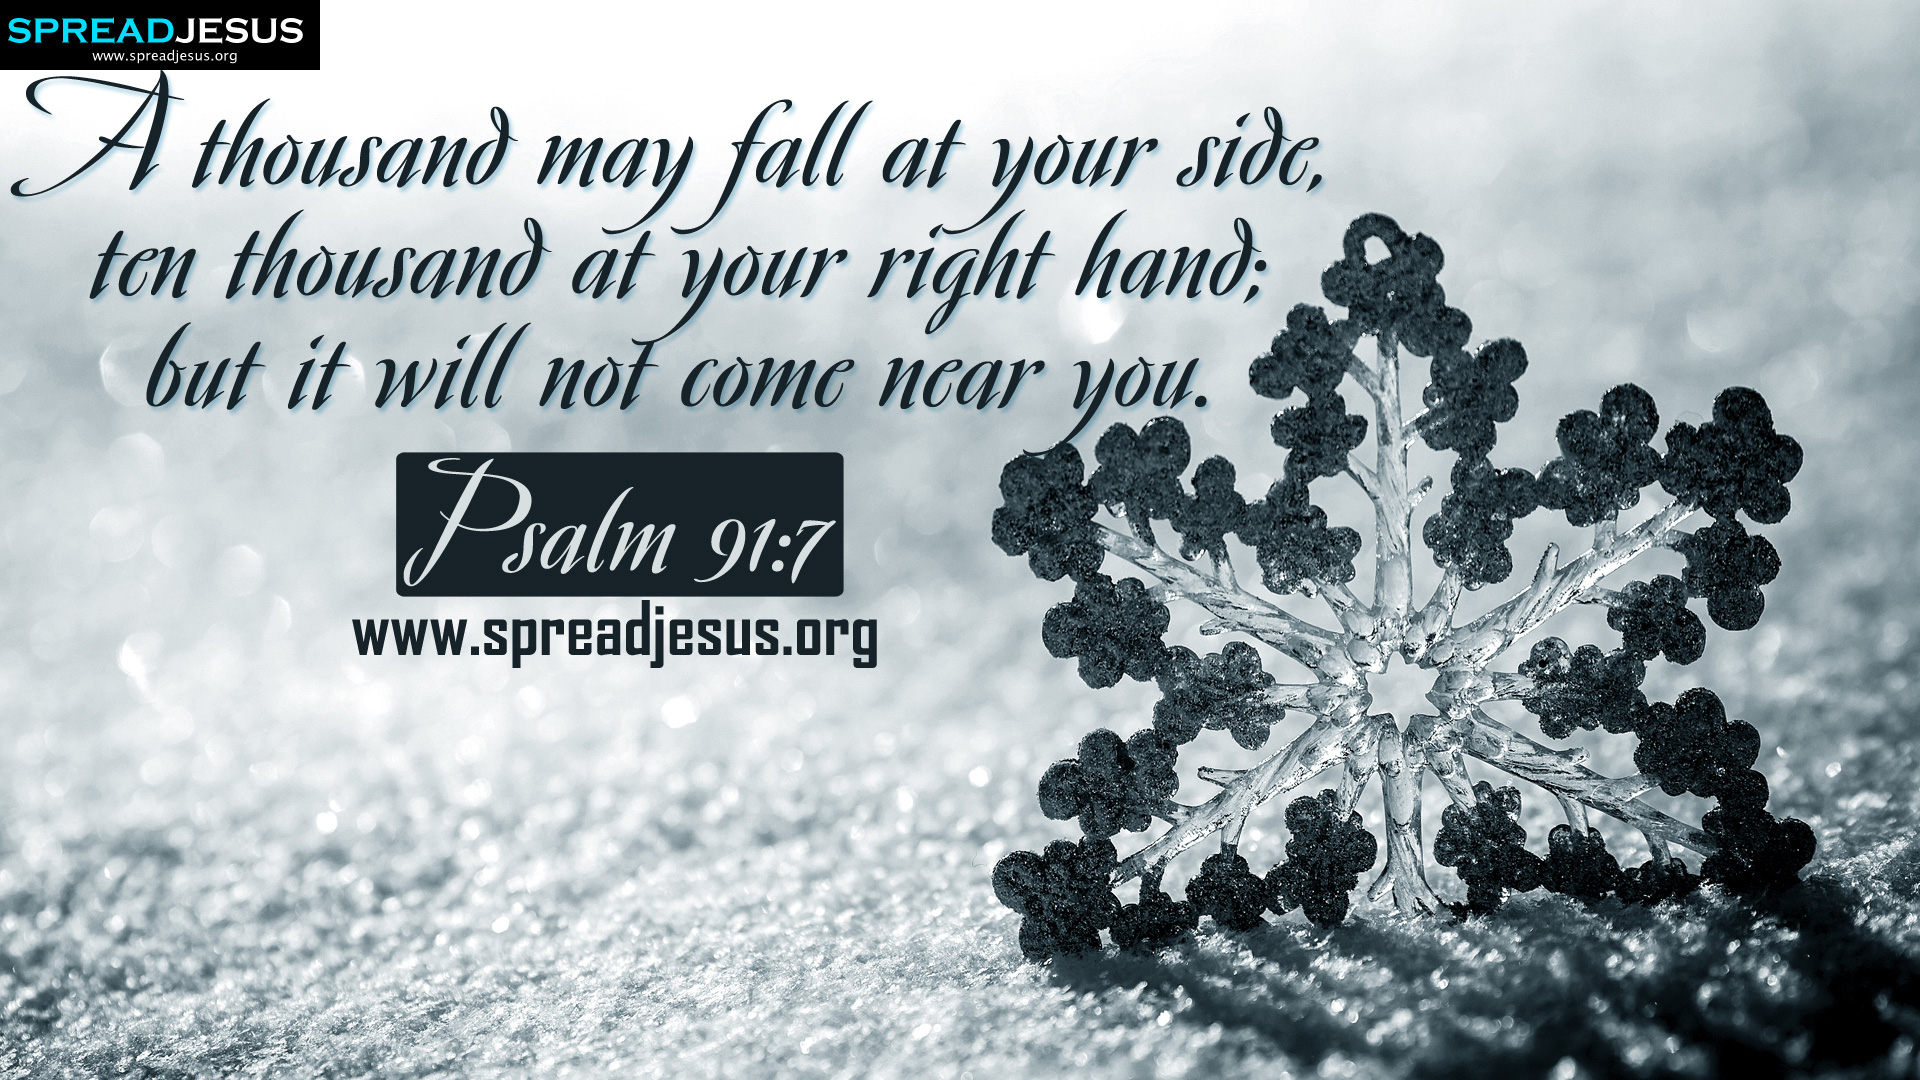 Psalm 91:7 BIBLE QUOTES HD-WALLPAPERS FREE DOWNLOAD